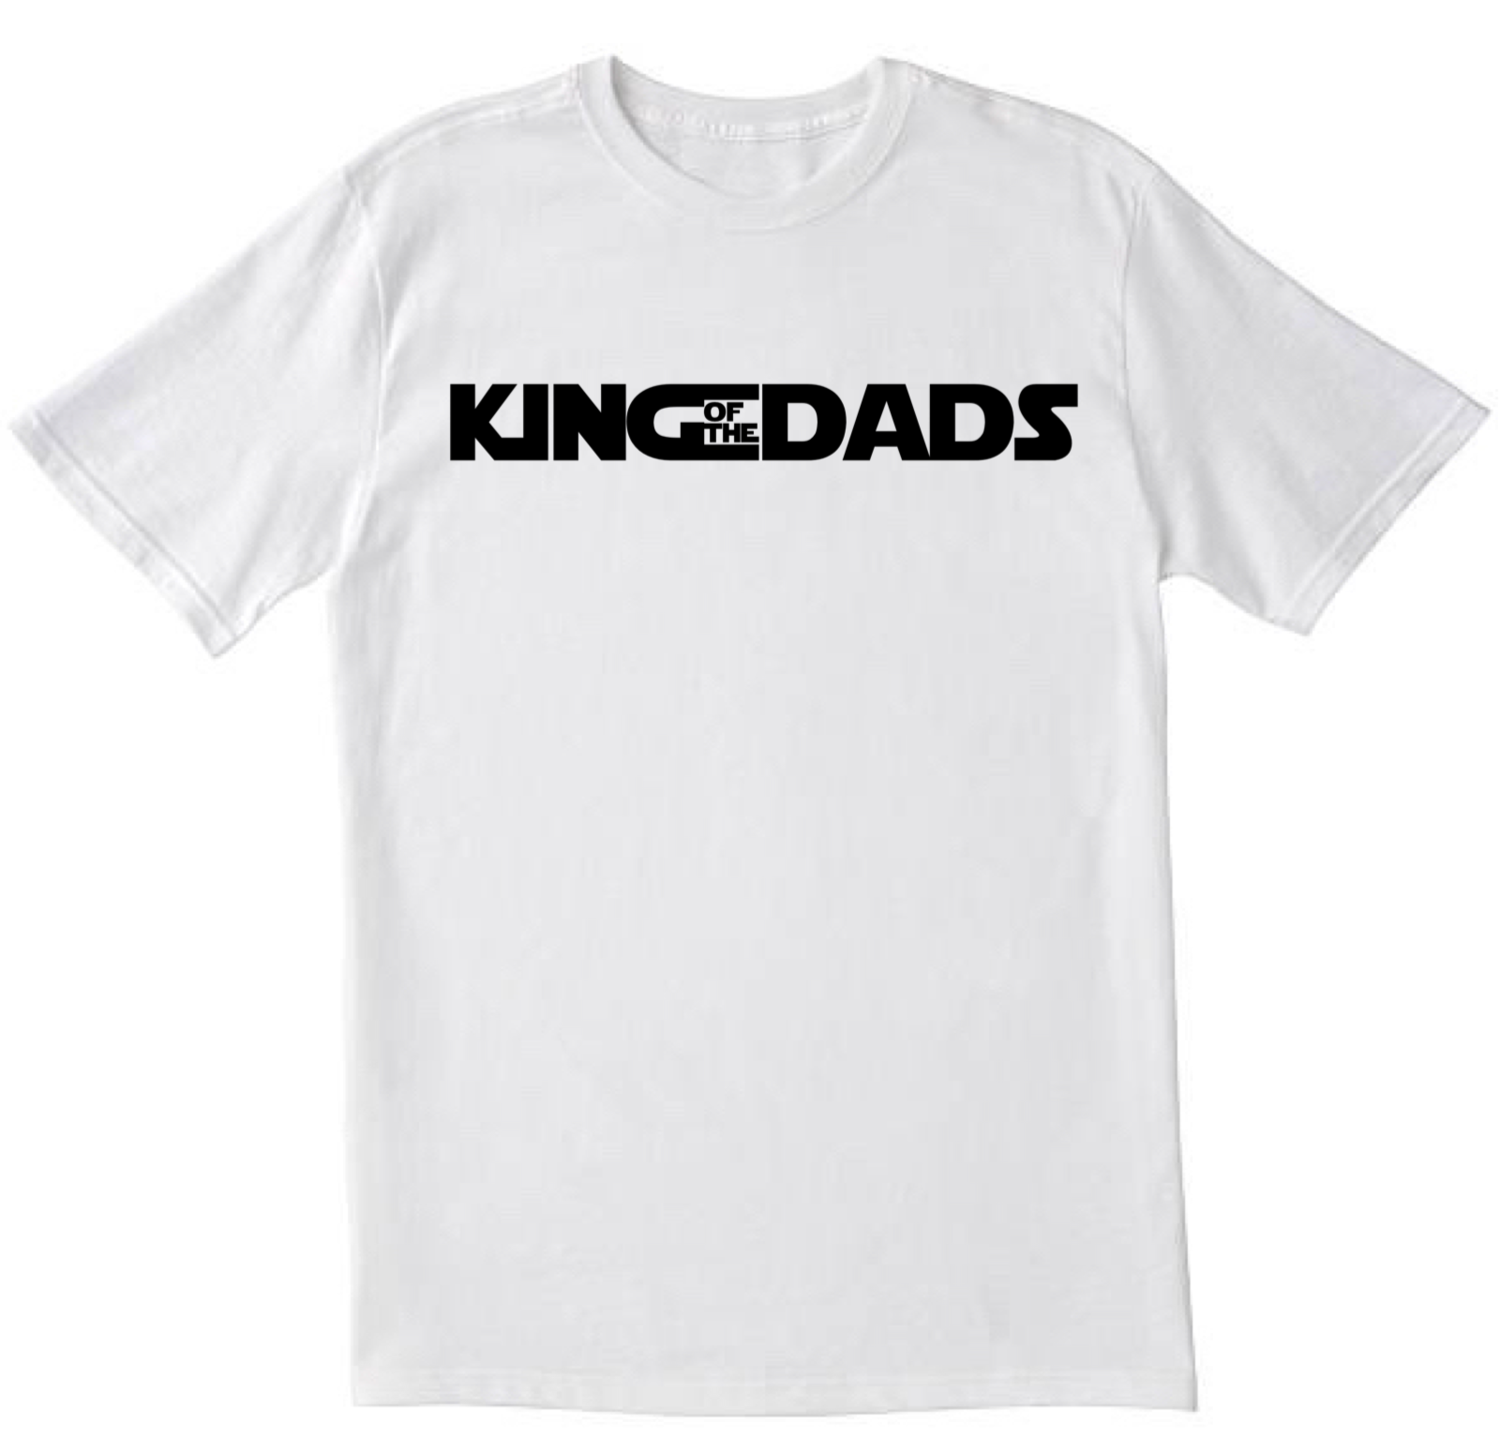 King Of The Dads T-shirt